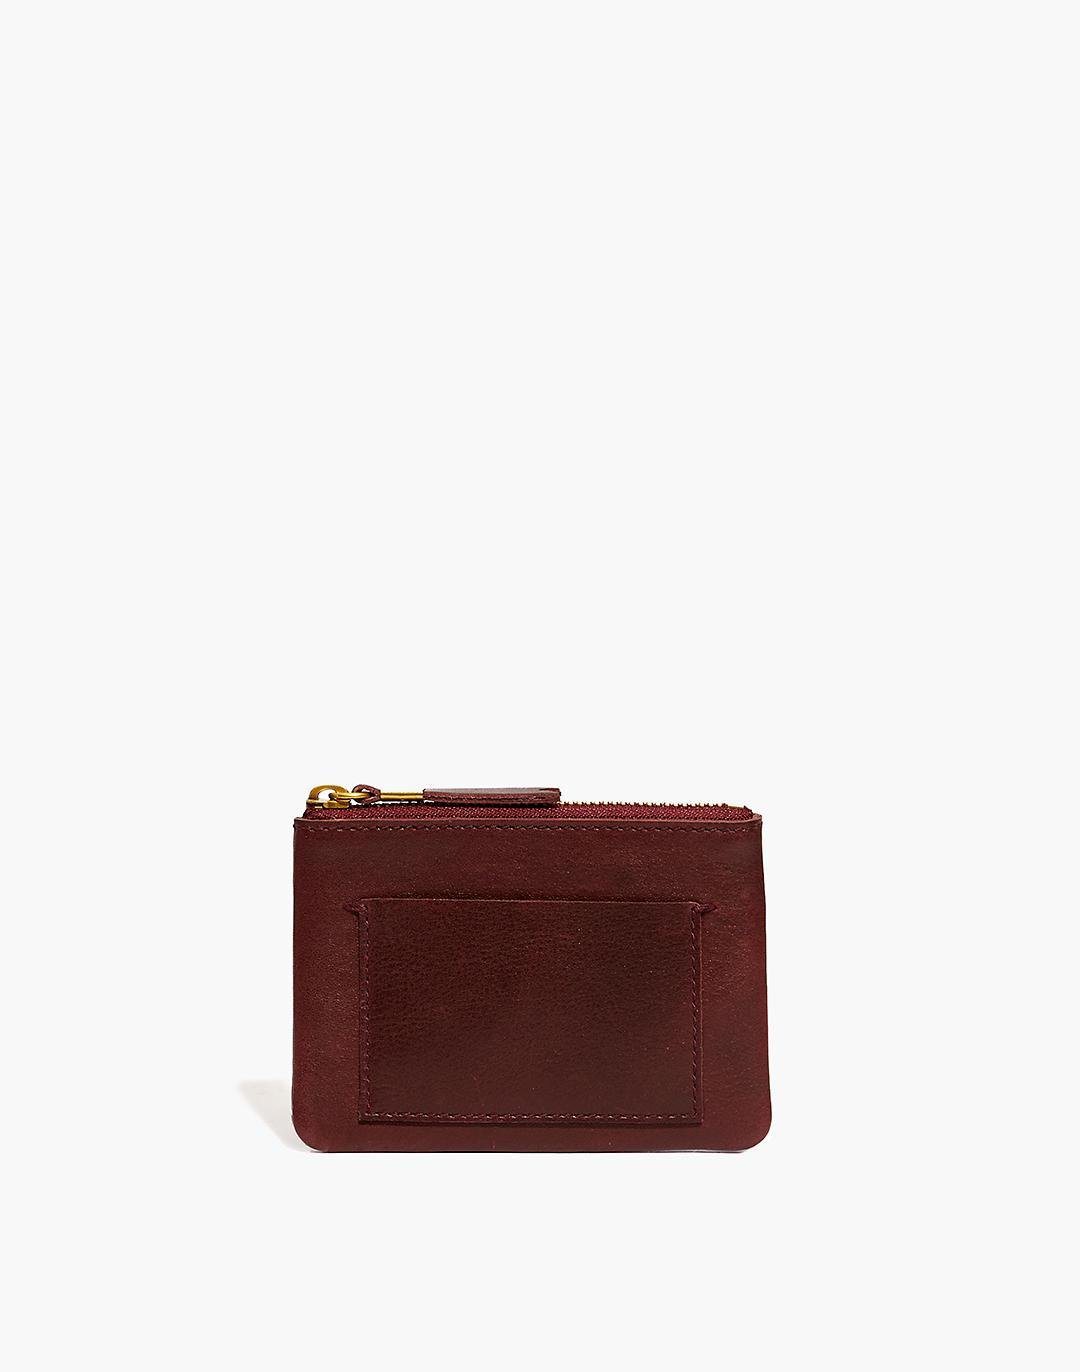 The Leather Pocket Pouch Wallet